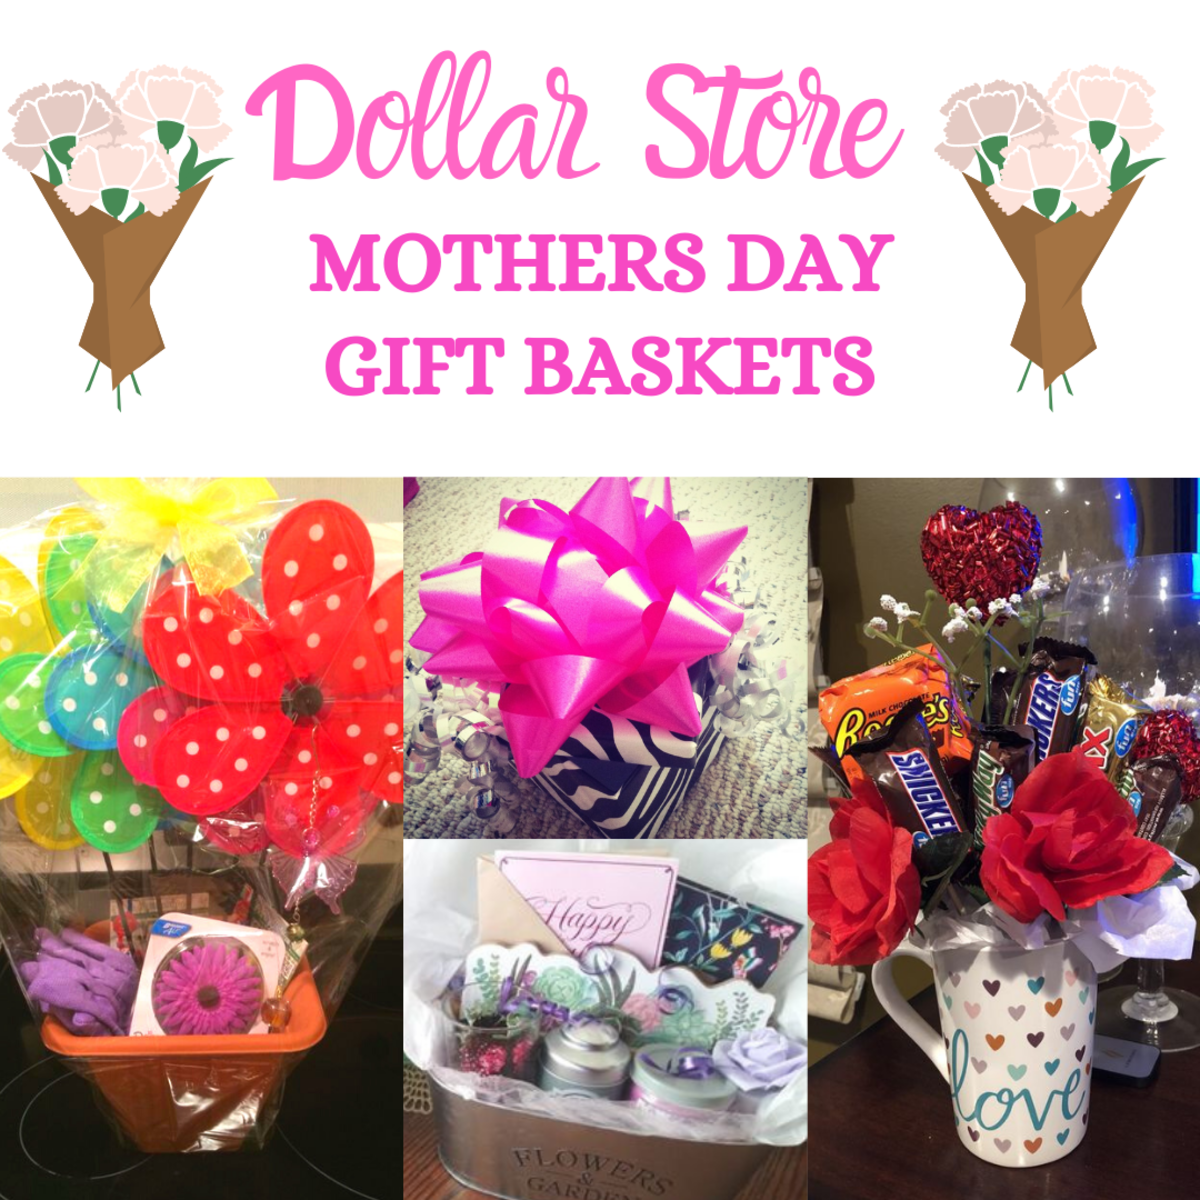 Dollar Store Mothers Day Gift Basket Ideas